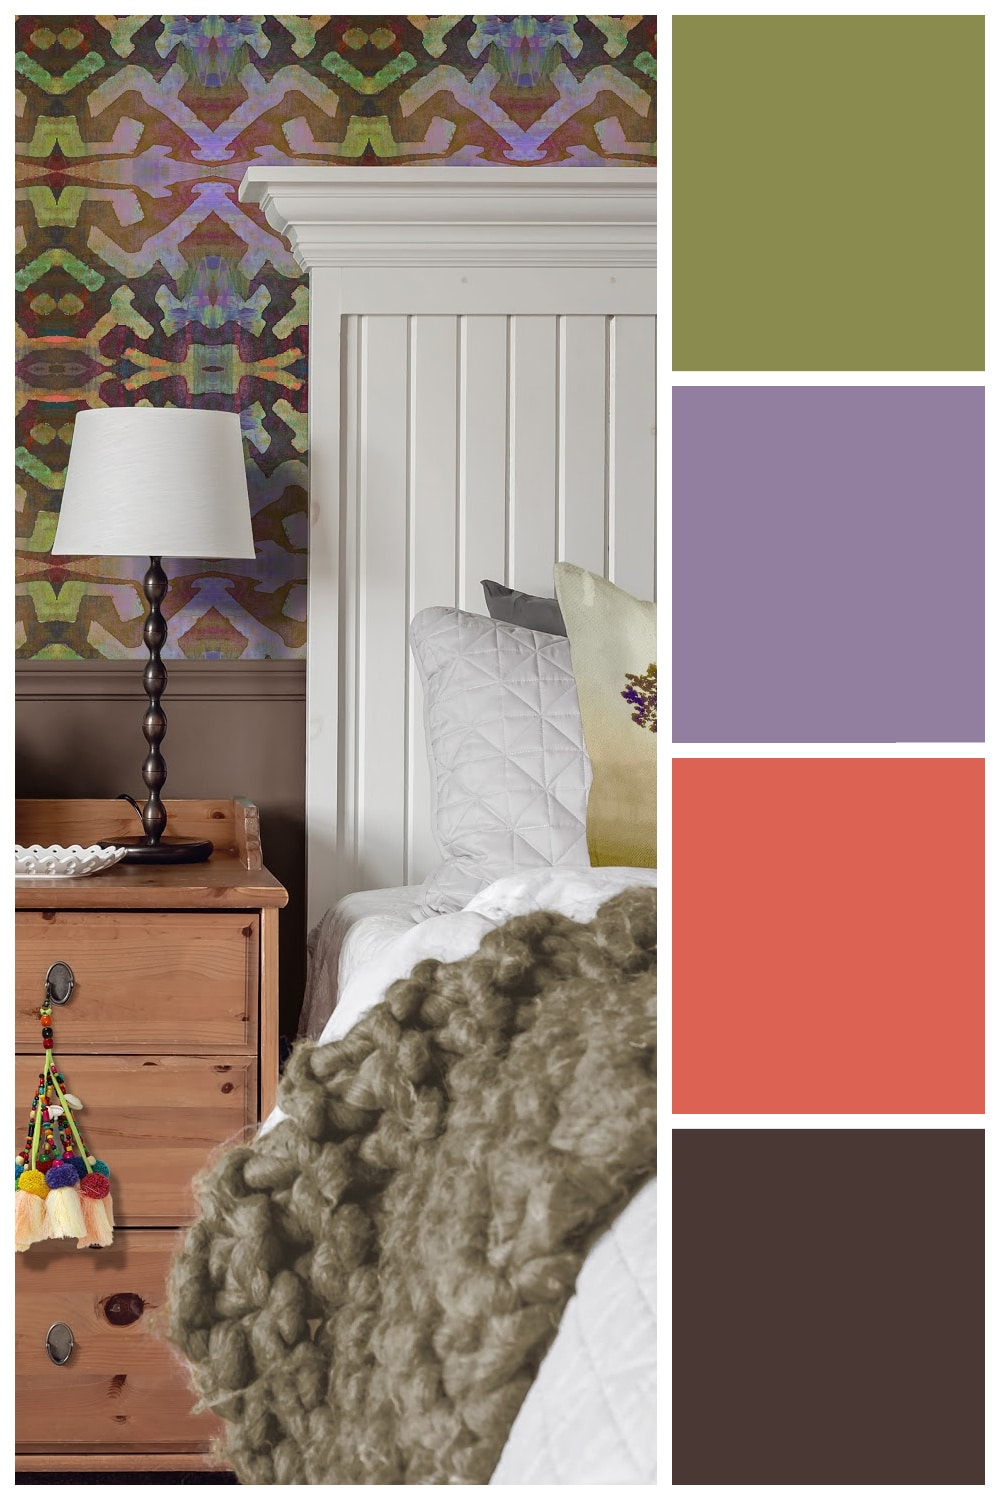 Use these color palettes, inspired by peel and stick wallpaper, to spark your creativity in your home decor. #peelandstickwallpaper #colorpalettes